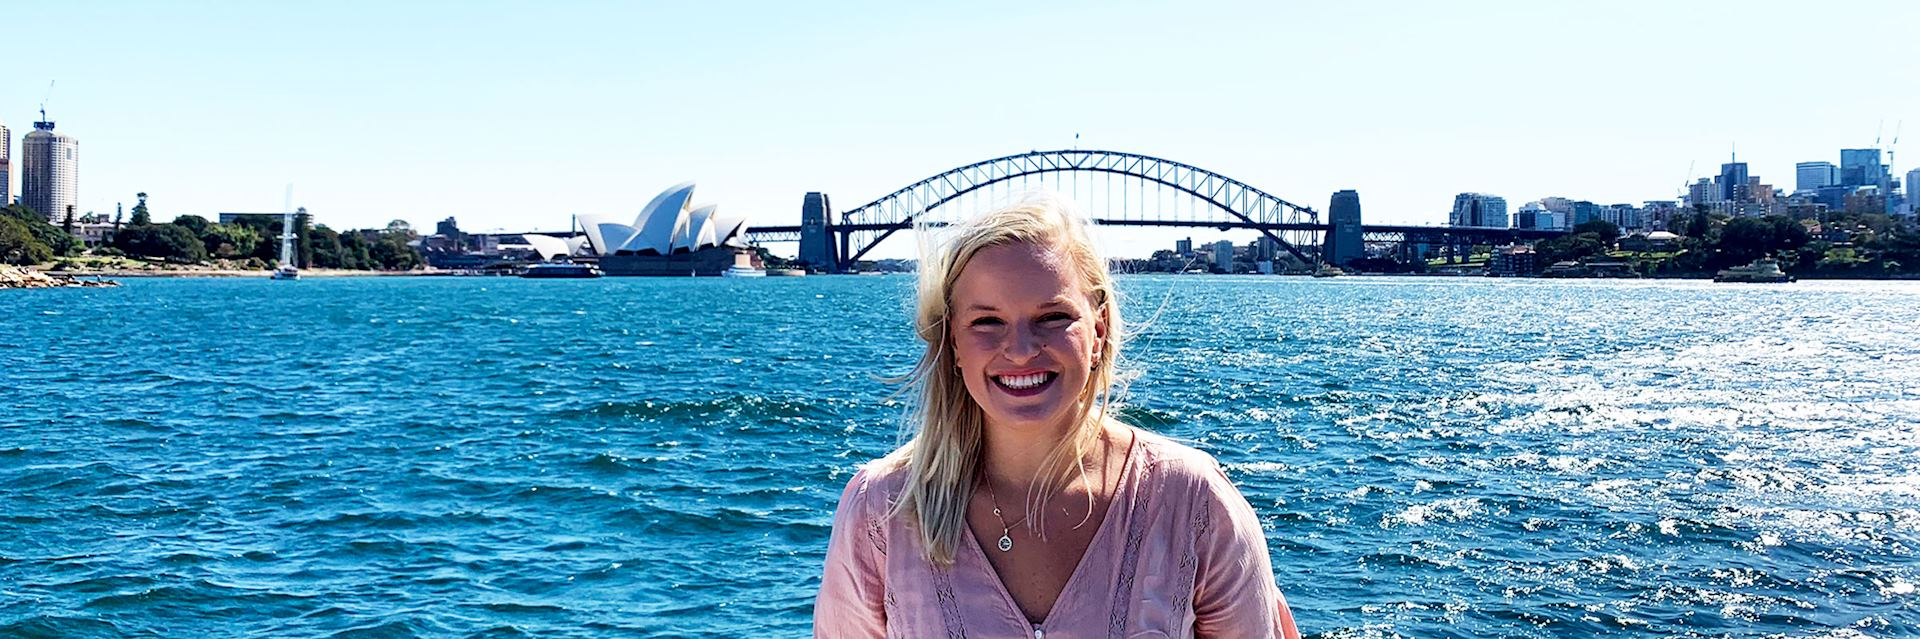 Lauren at Sydney Harbour